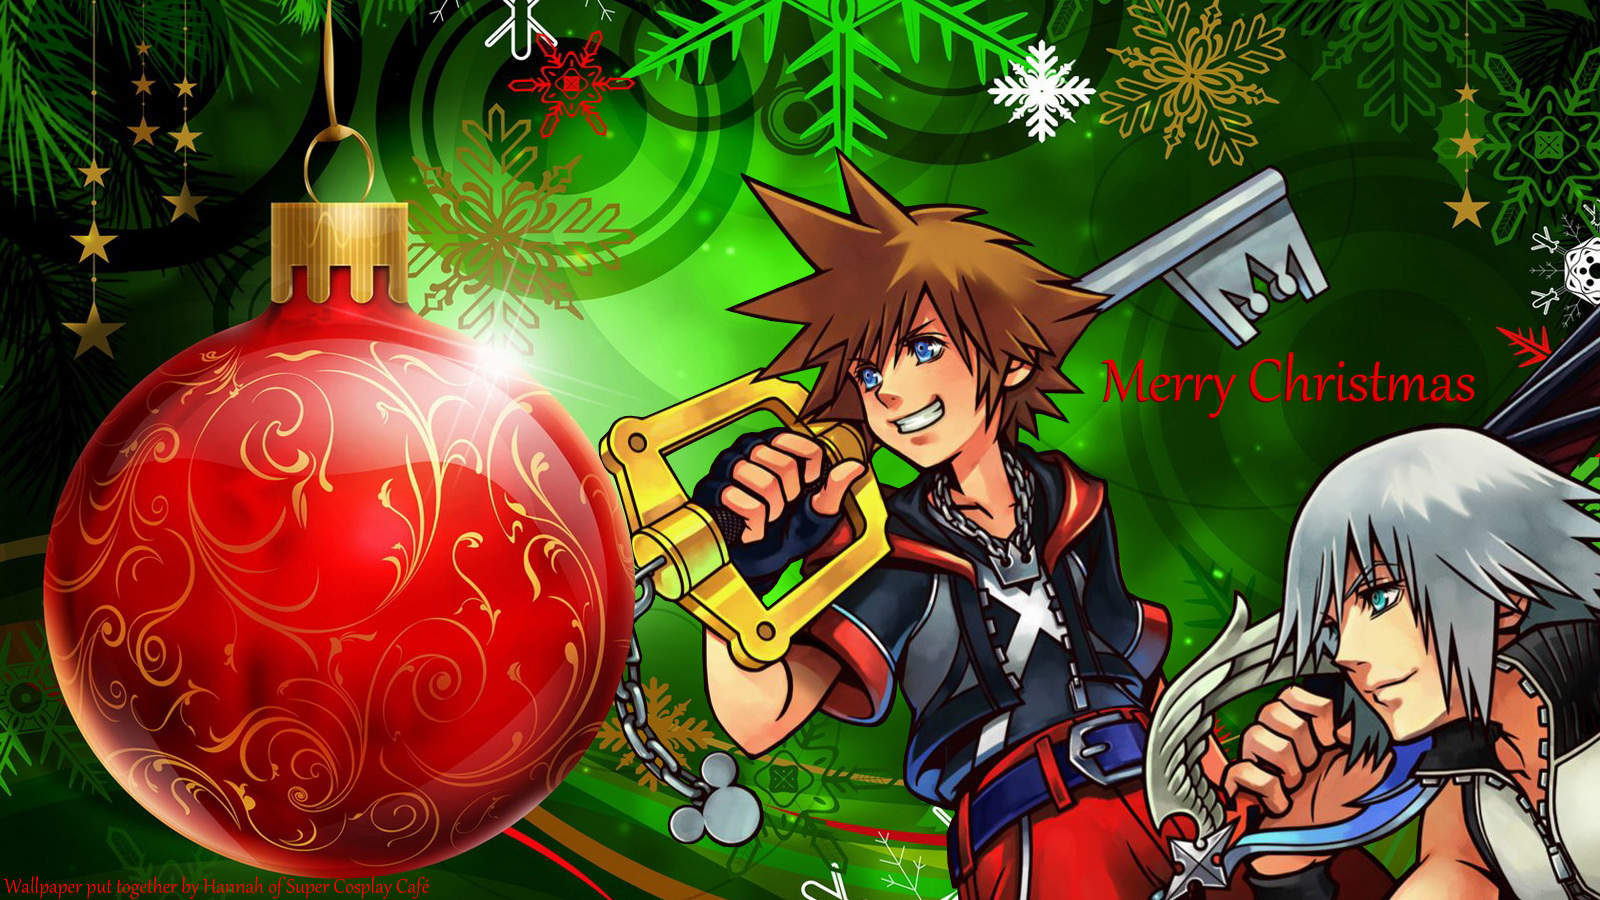 Kingdom Hearts Christmas wallpaper   My Favorite Video, Card and ...